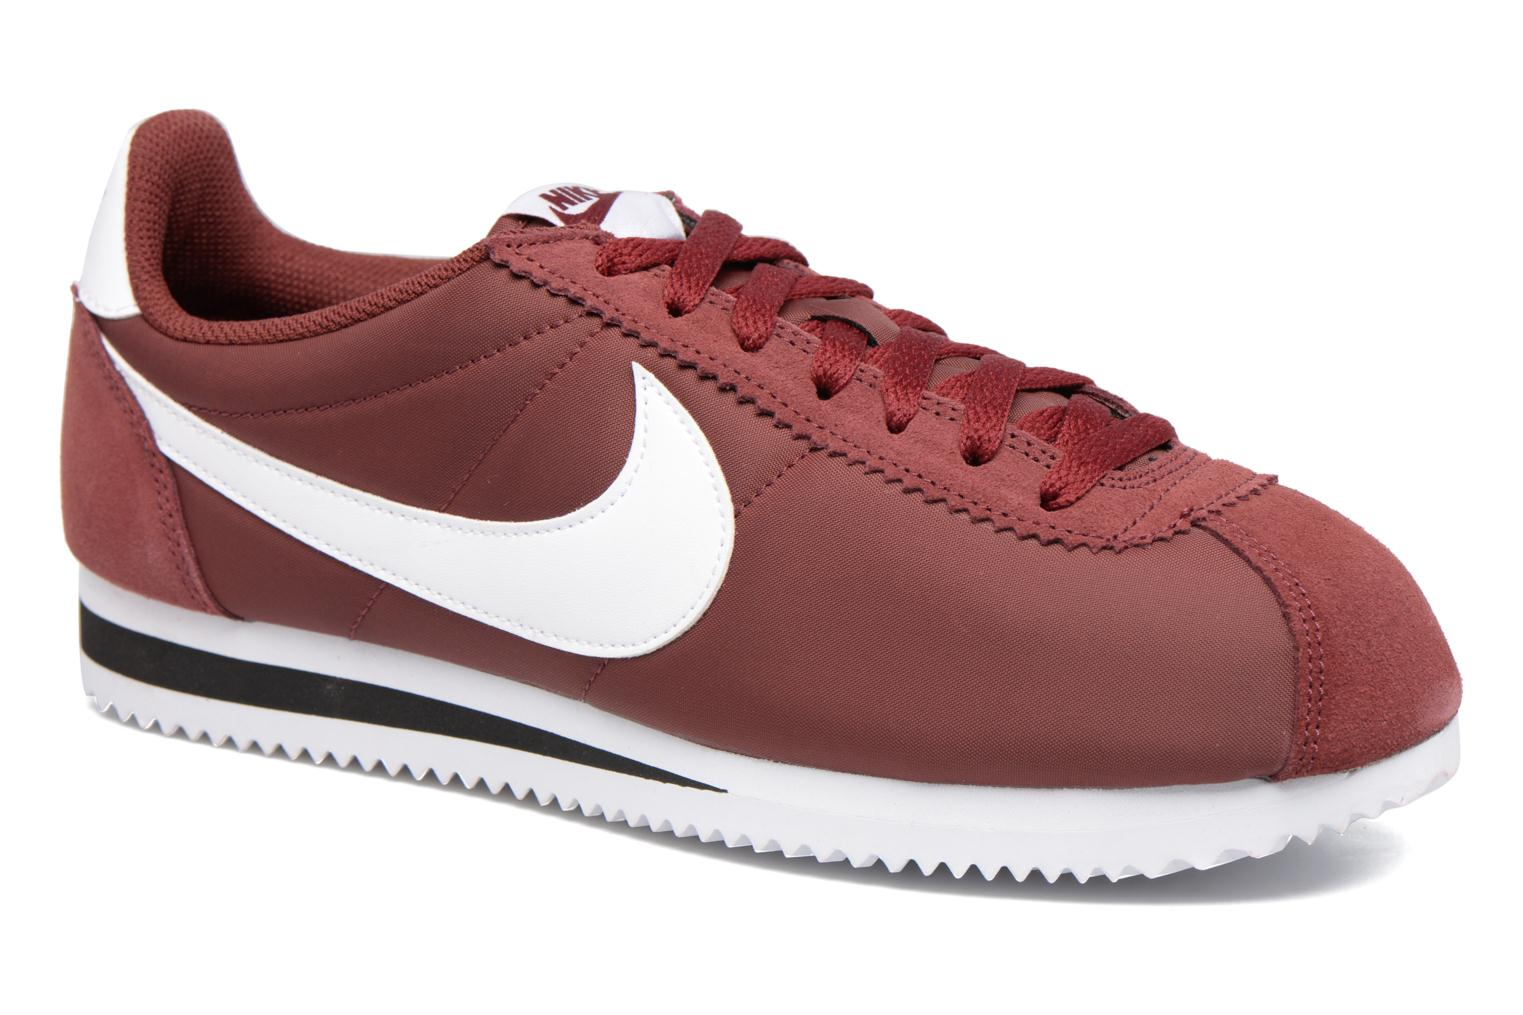 sports shoes f7d70 e4977 Baskets Nike Classic Cortez Nylon Bordeaux vue détail paire